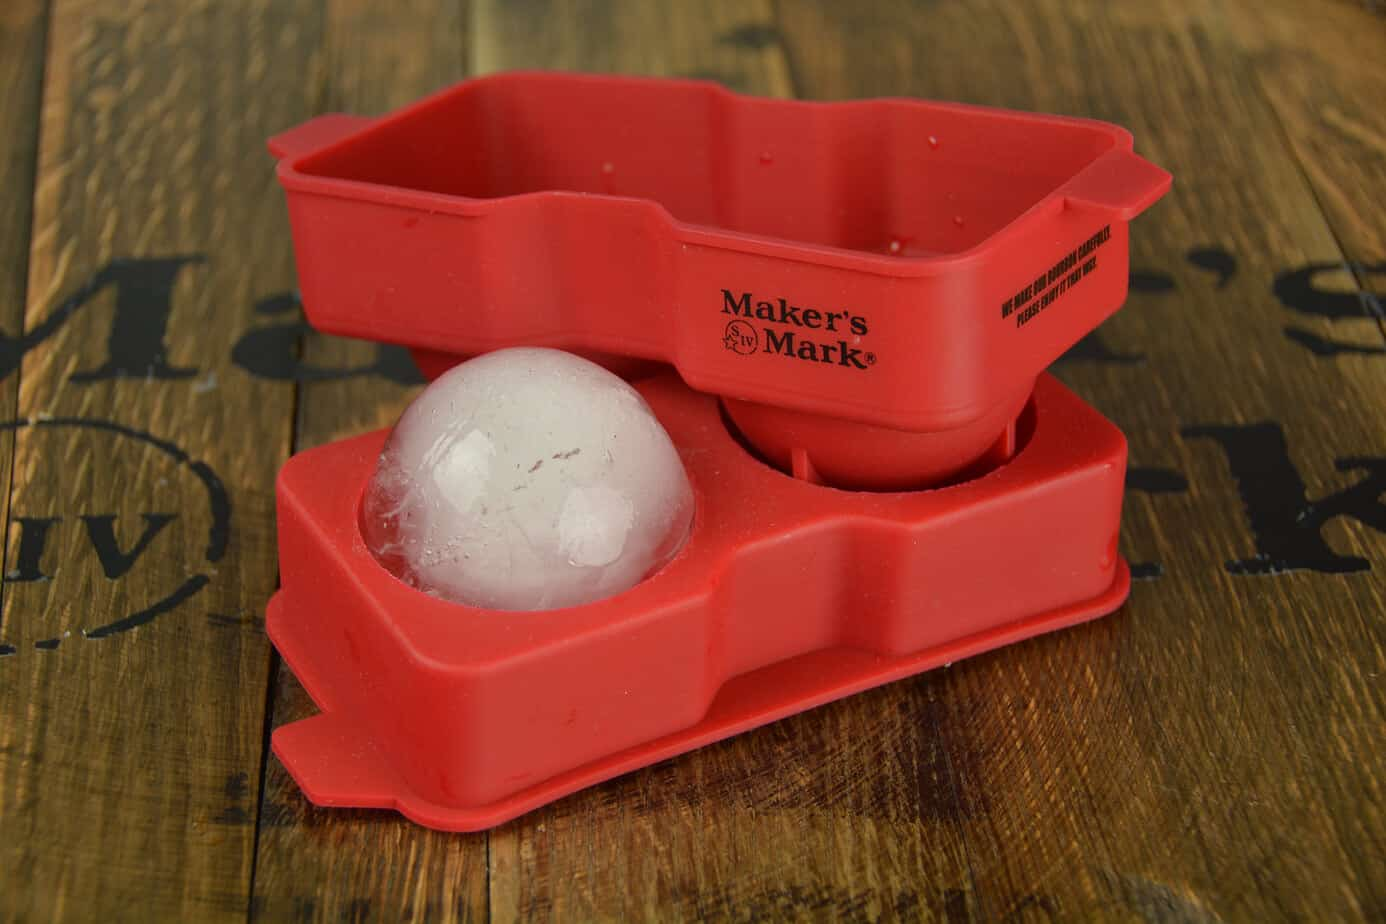 Makers Mark branded ice ball tray